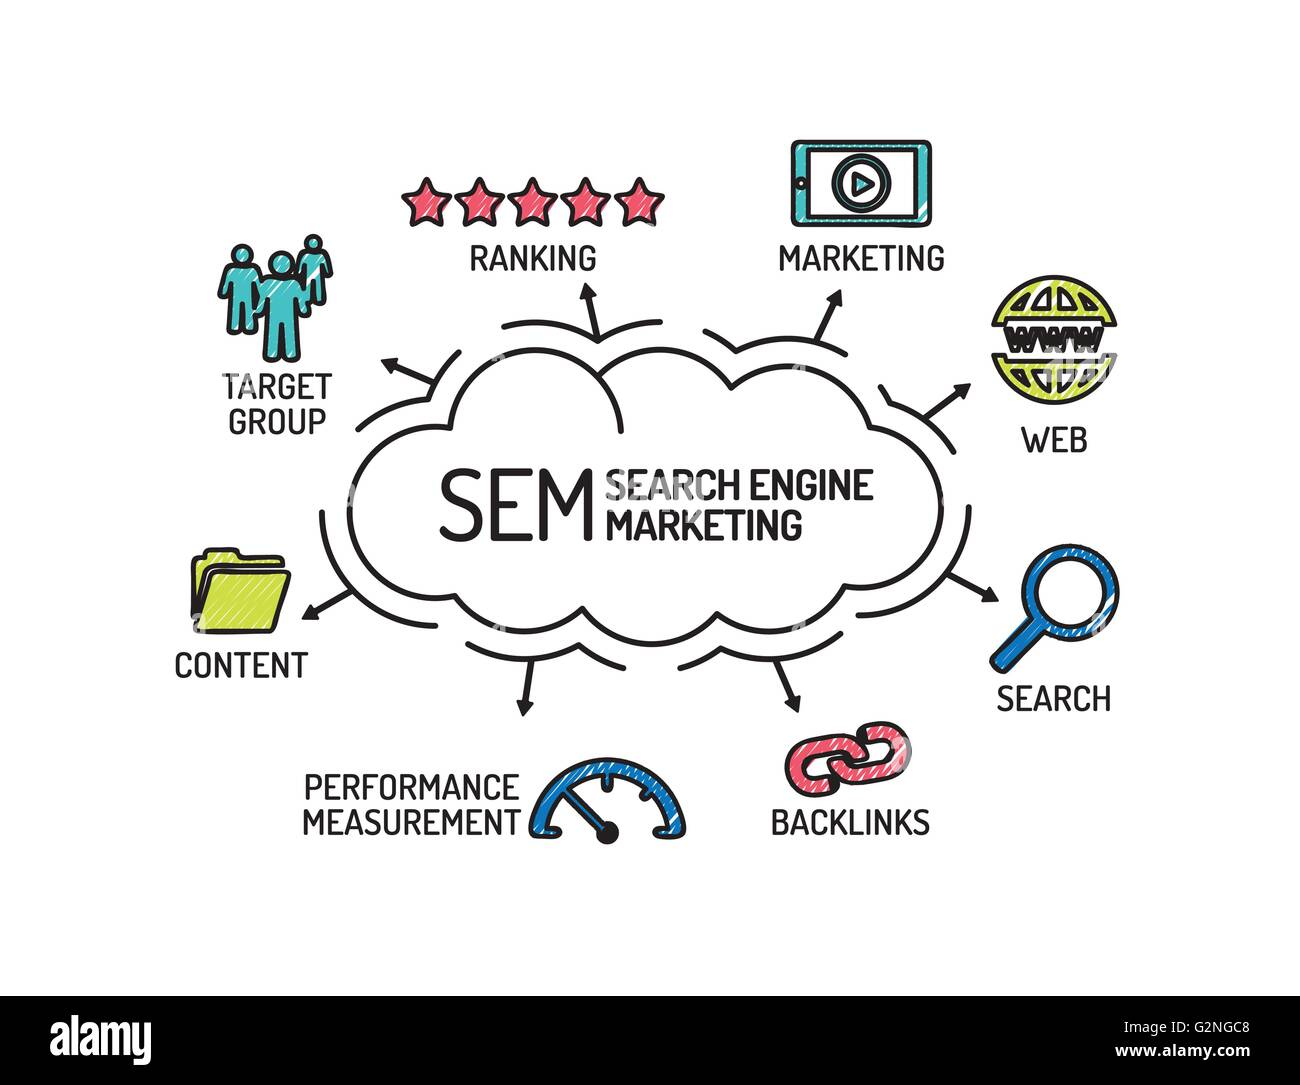 SEM Search Engine Marketing. Chart with keywords and icons. Sketch - Stock Vector